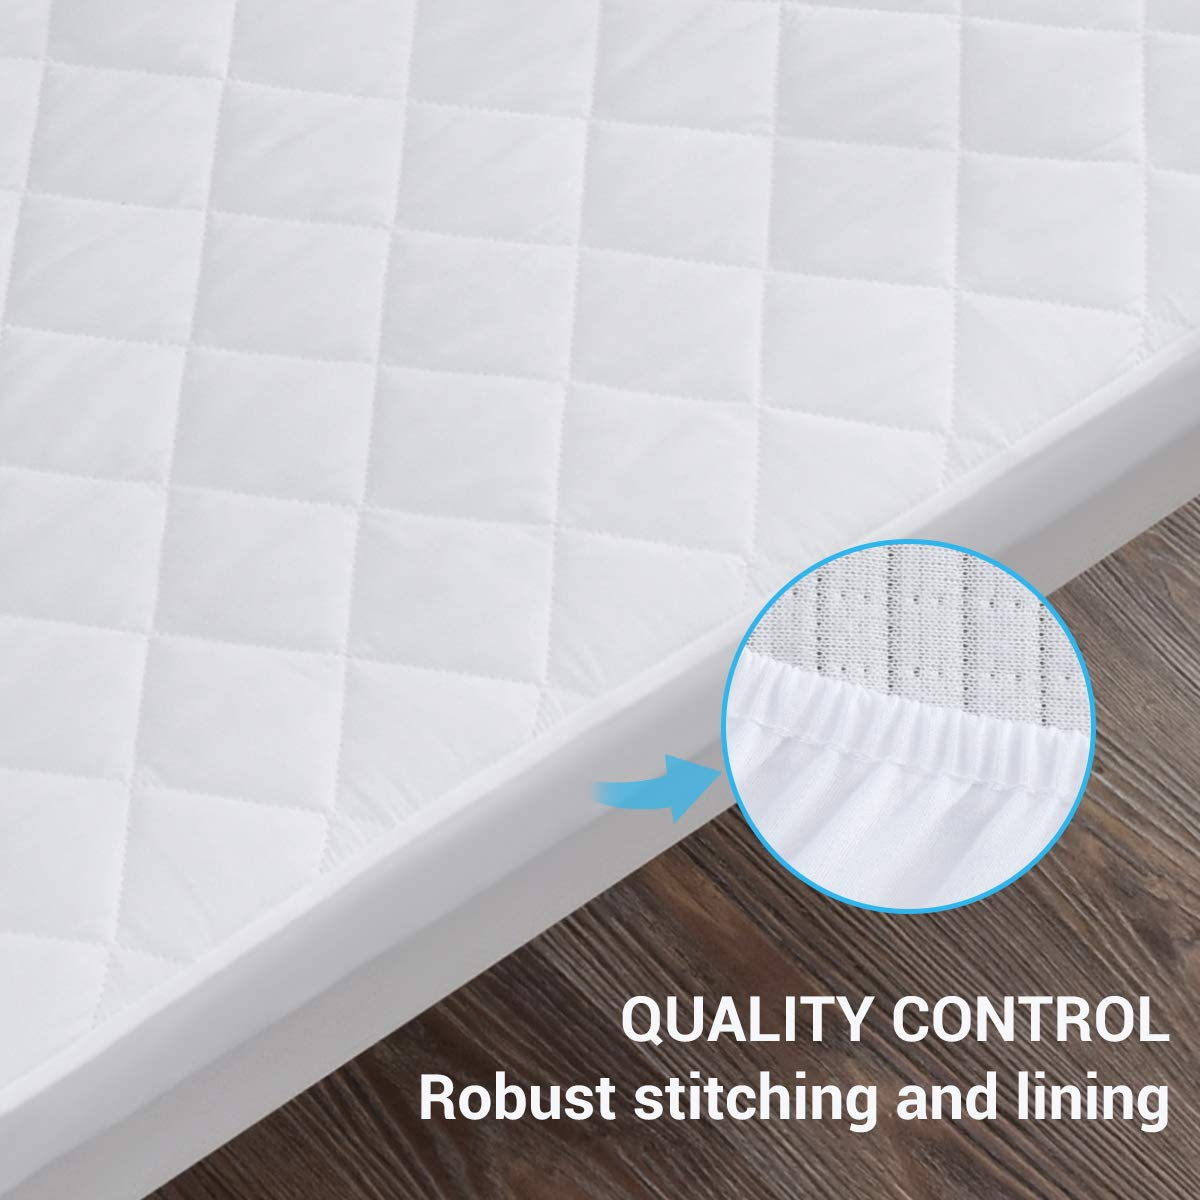 GRT Waterproof Crib Mattress Protector White Quilted Fitted Baby Mattress Cover Extra Soft Breathable Toddler Mattress Pad 52x28-9 Deep